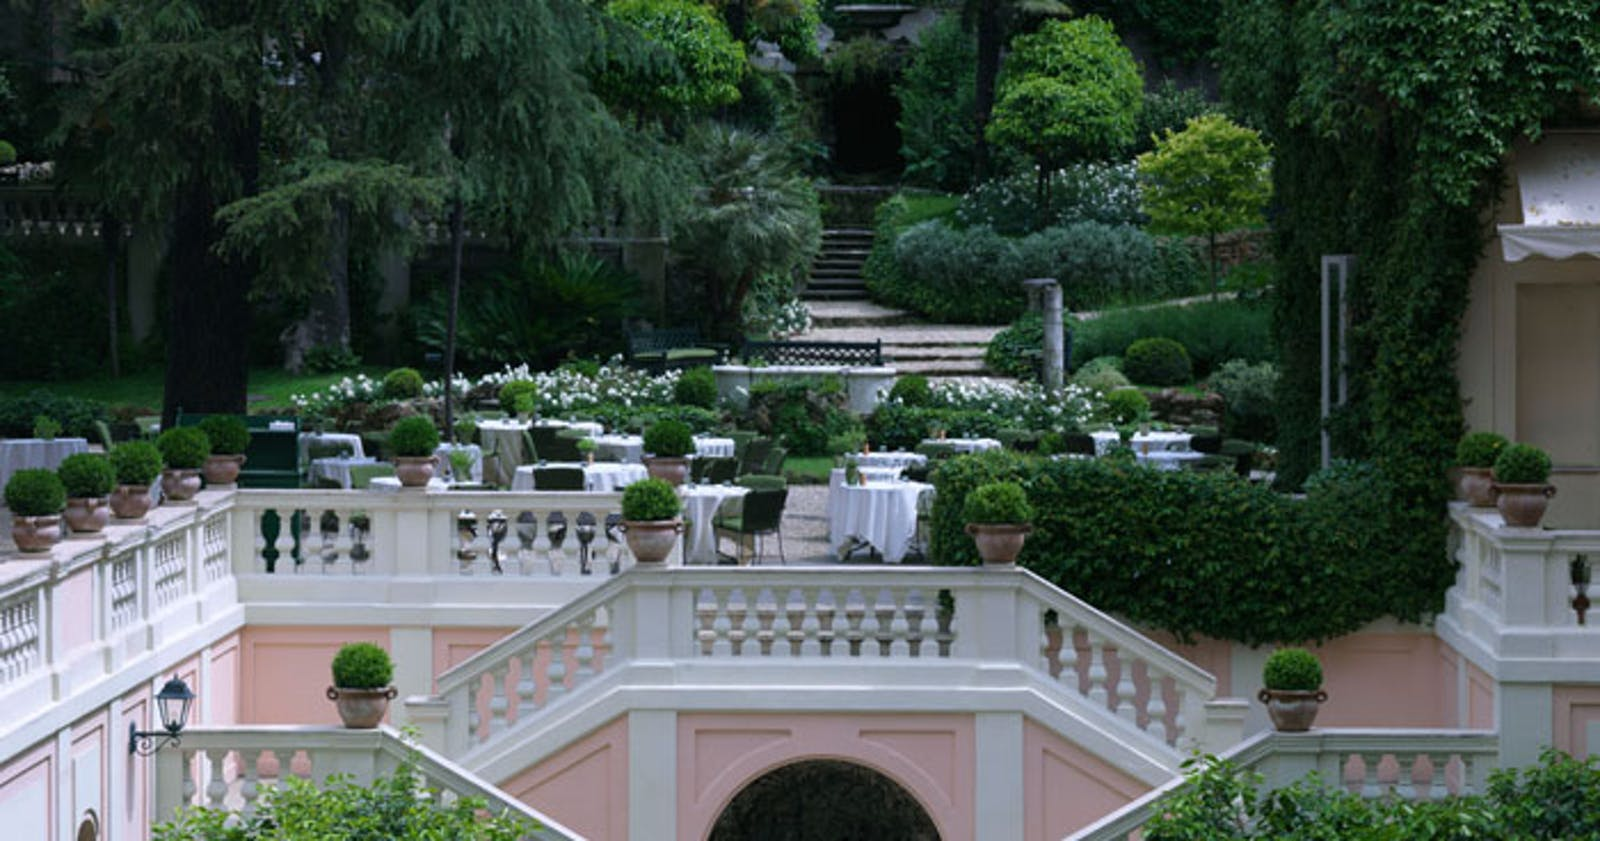 Gardens at Hotel De Russie, Rome, Italy